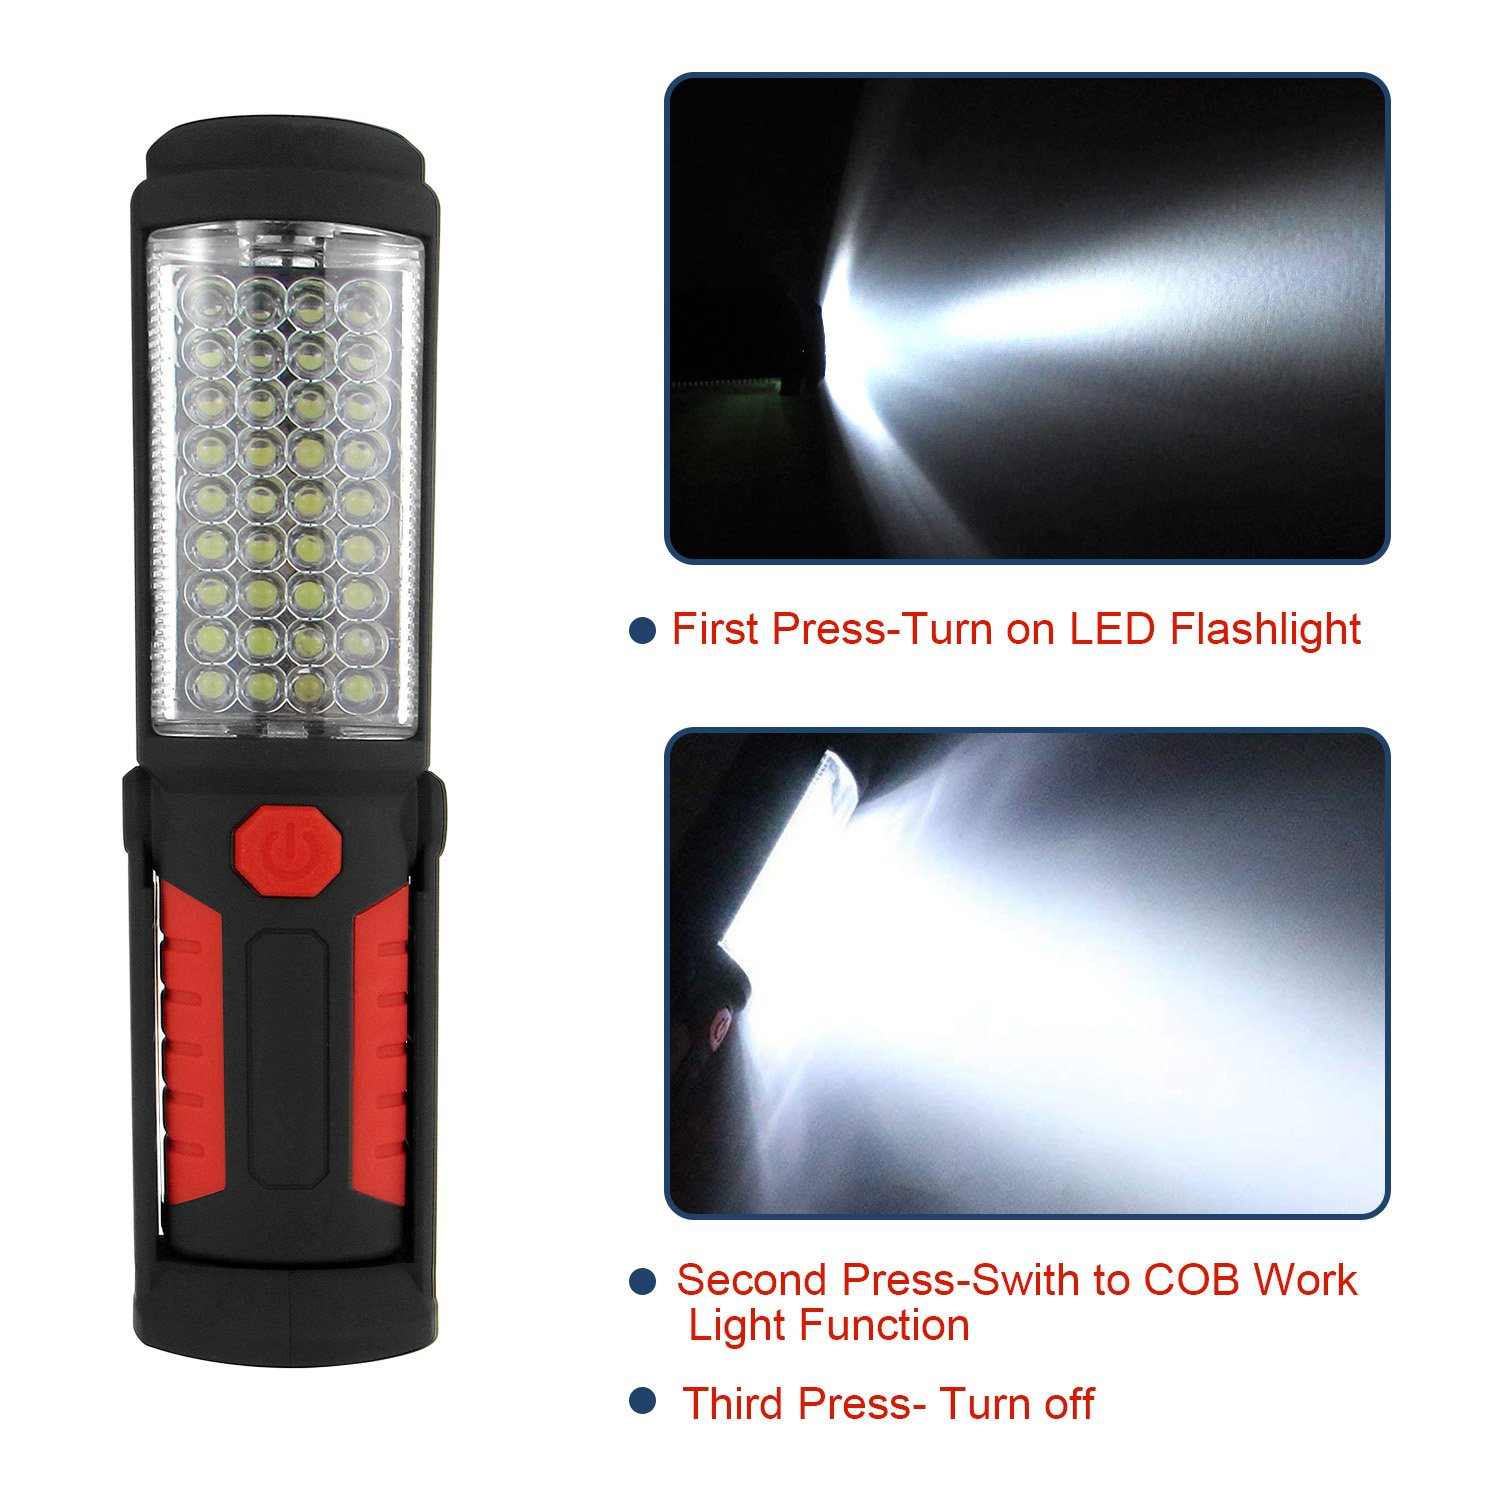 Household Workshop Automobile Camping Emergency Use SunTop Led Work Light,Rechargeable LED Portable Inspection Lamp Torch Camping Light with Magnetic Clip